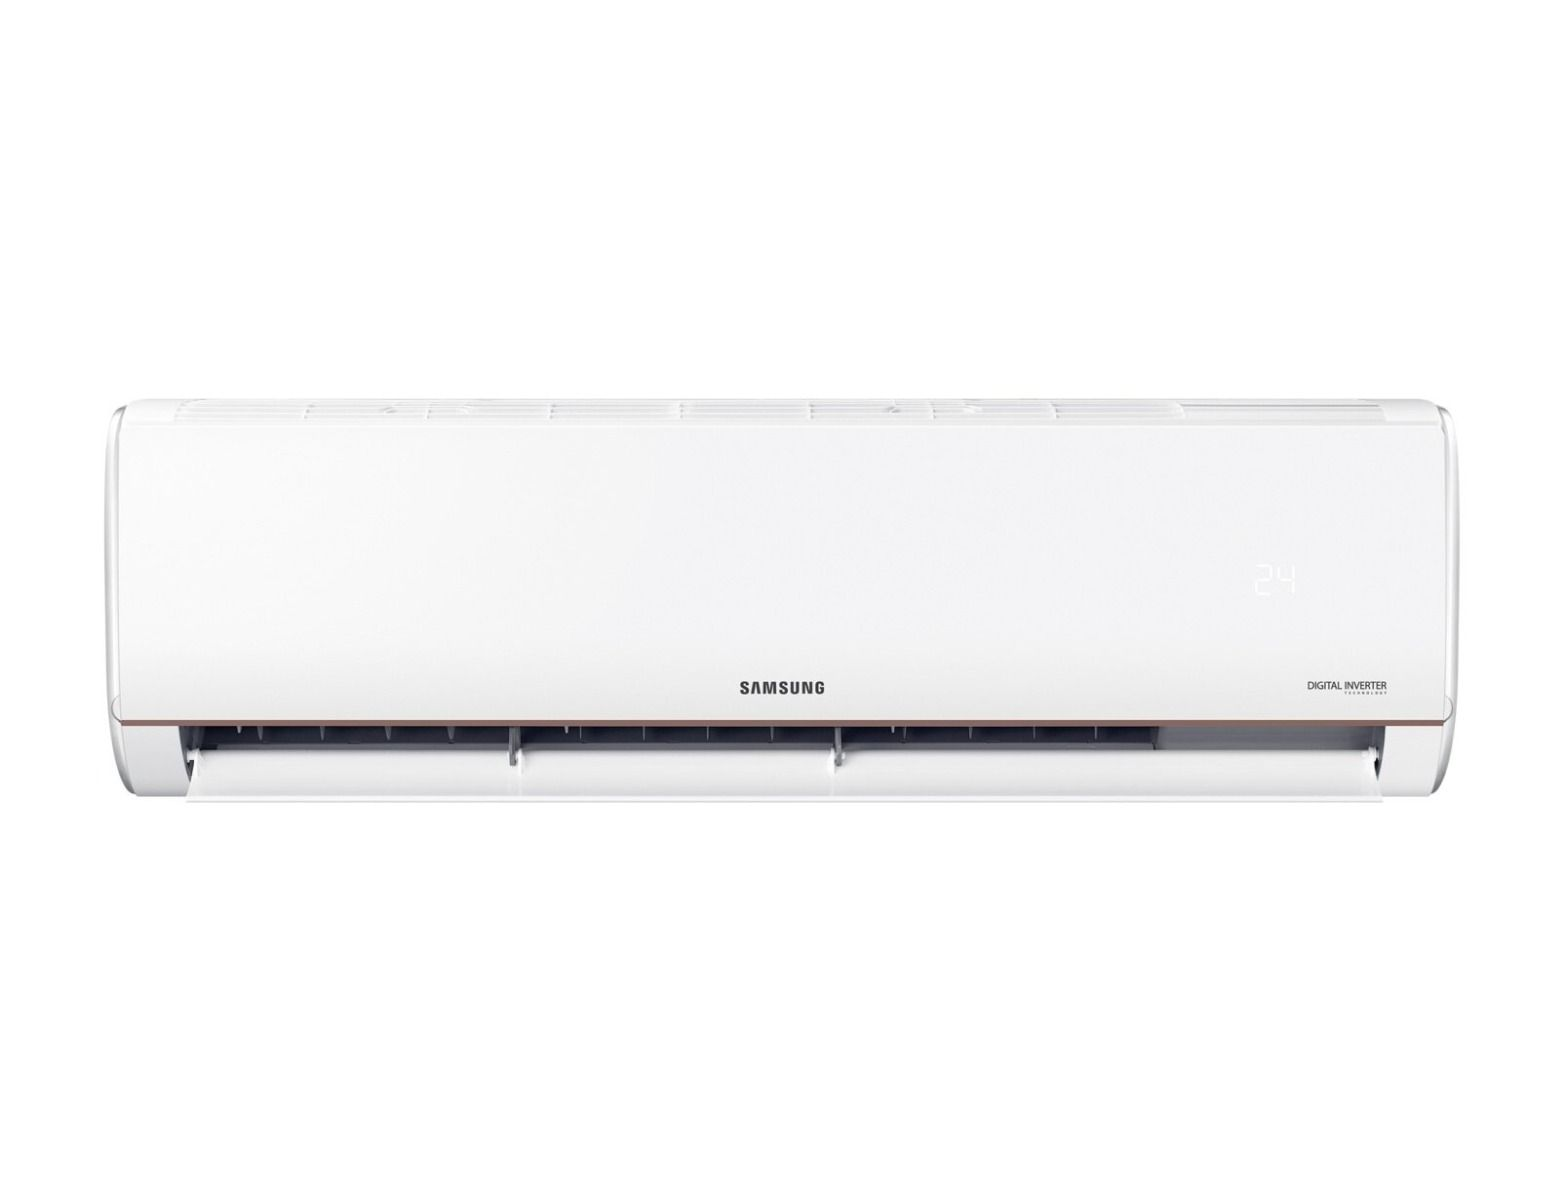 Samsung AR18TY3QCBR Inverter Split AC Powered By Digital Inverter With Faster Cooling 4.98kW (1.5T)